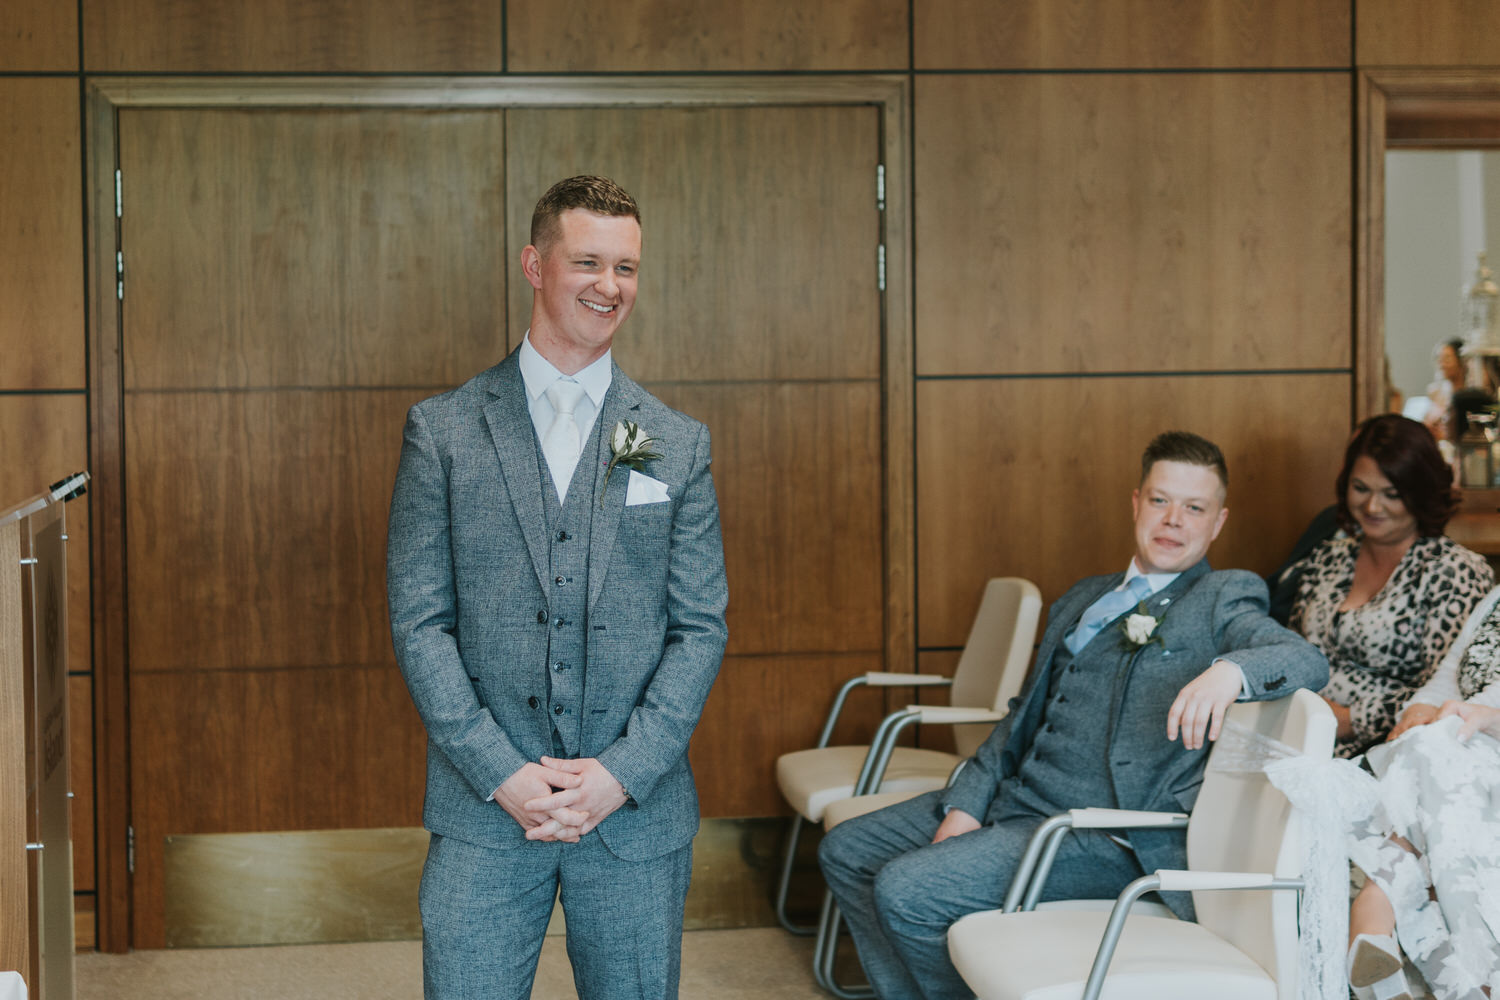 Lisburn Wedding at Lagan Valley Island 48